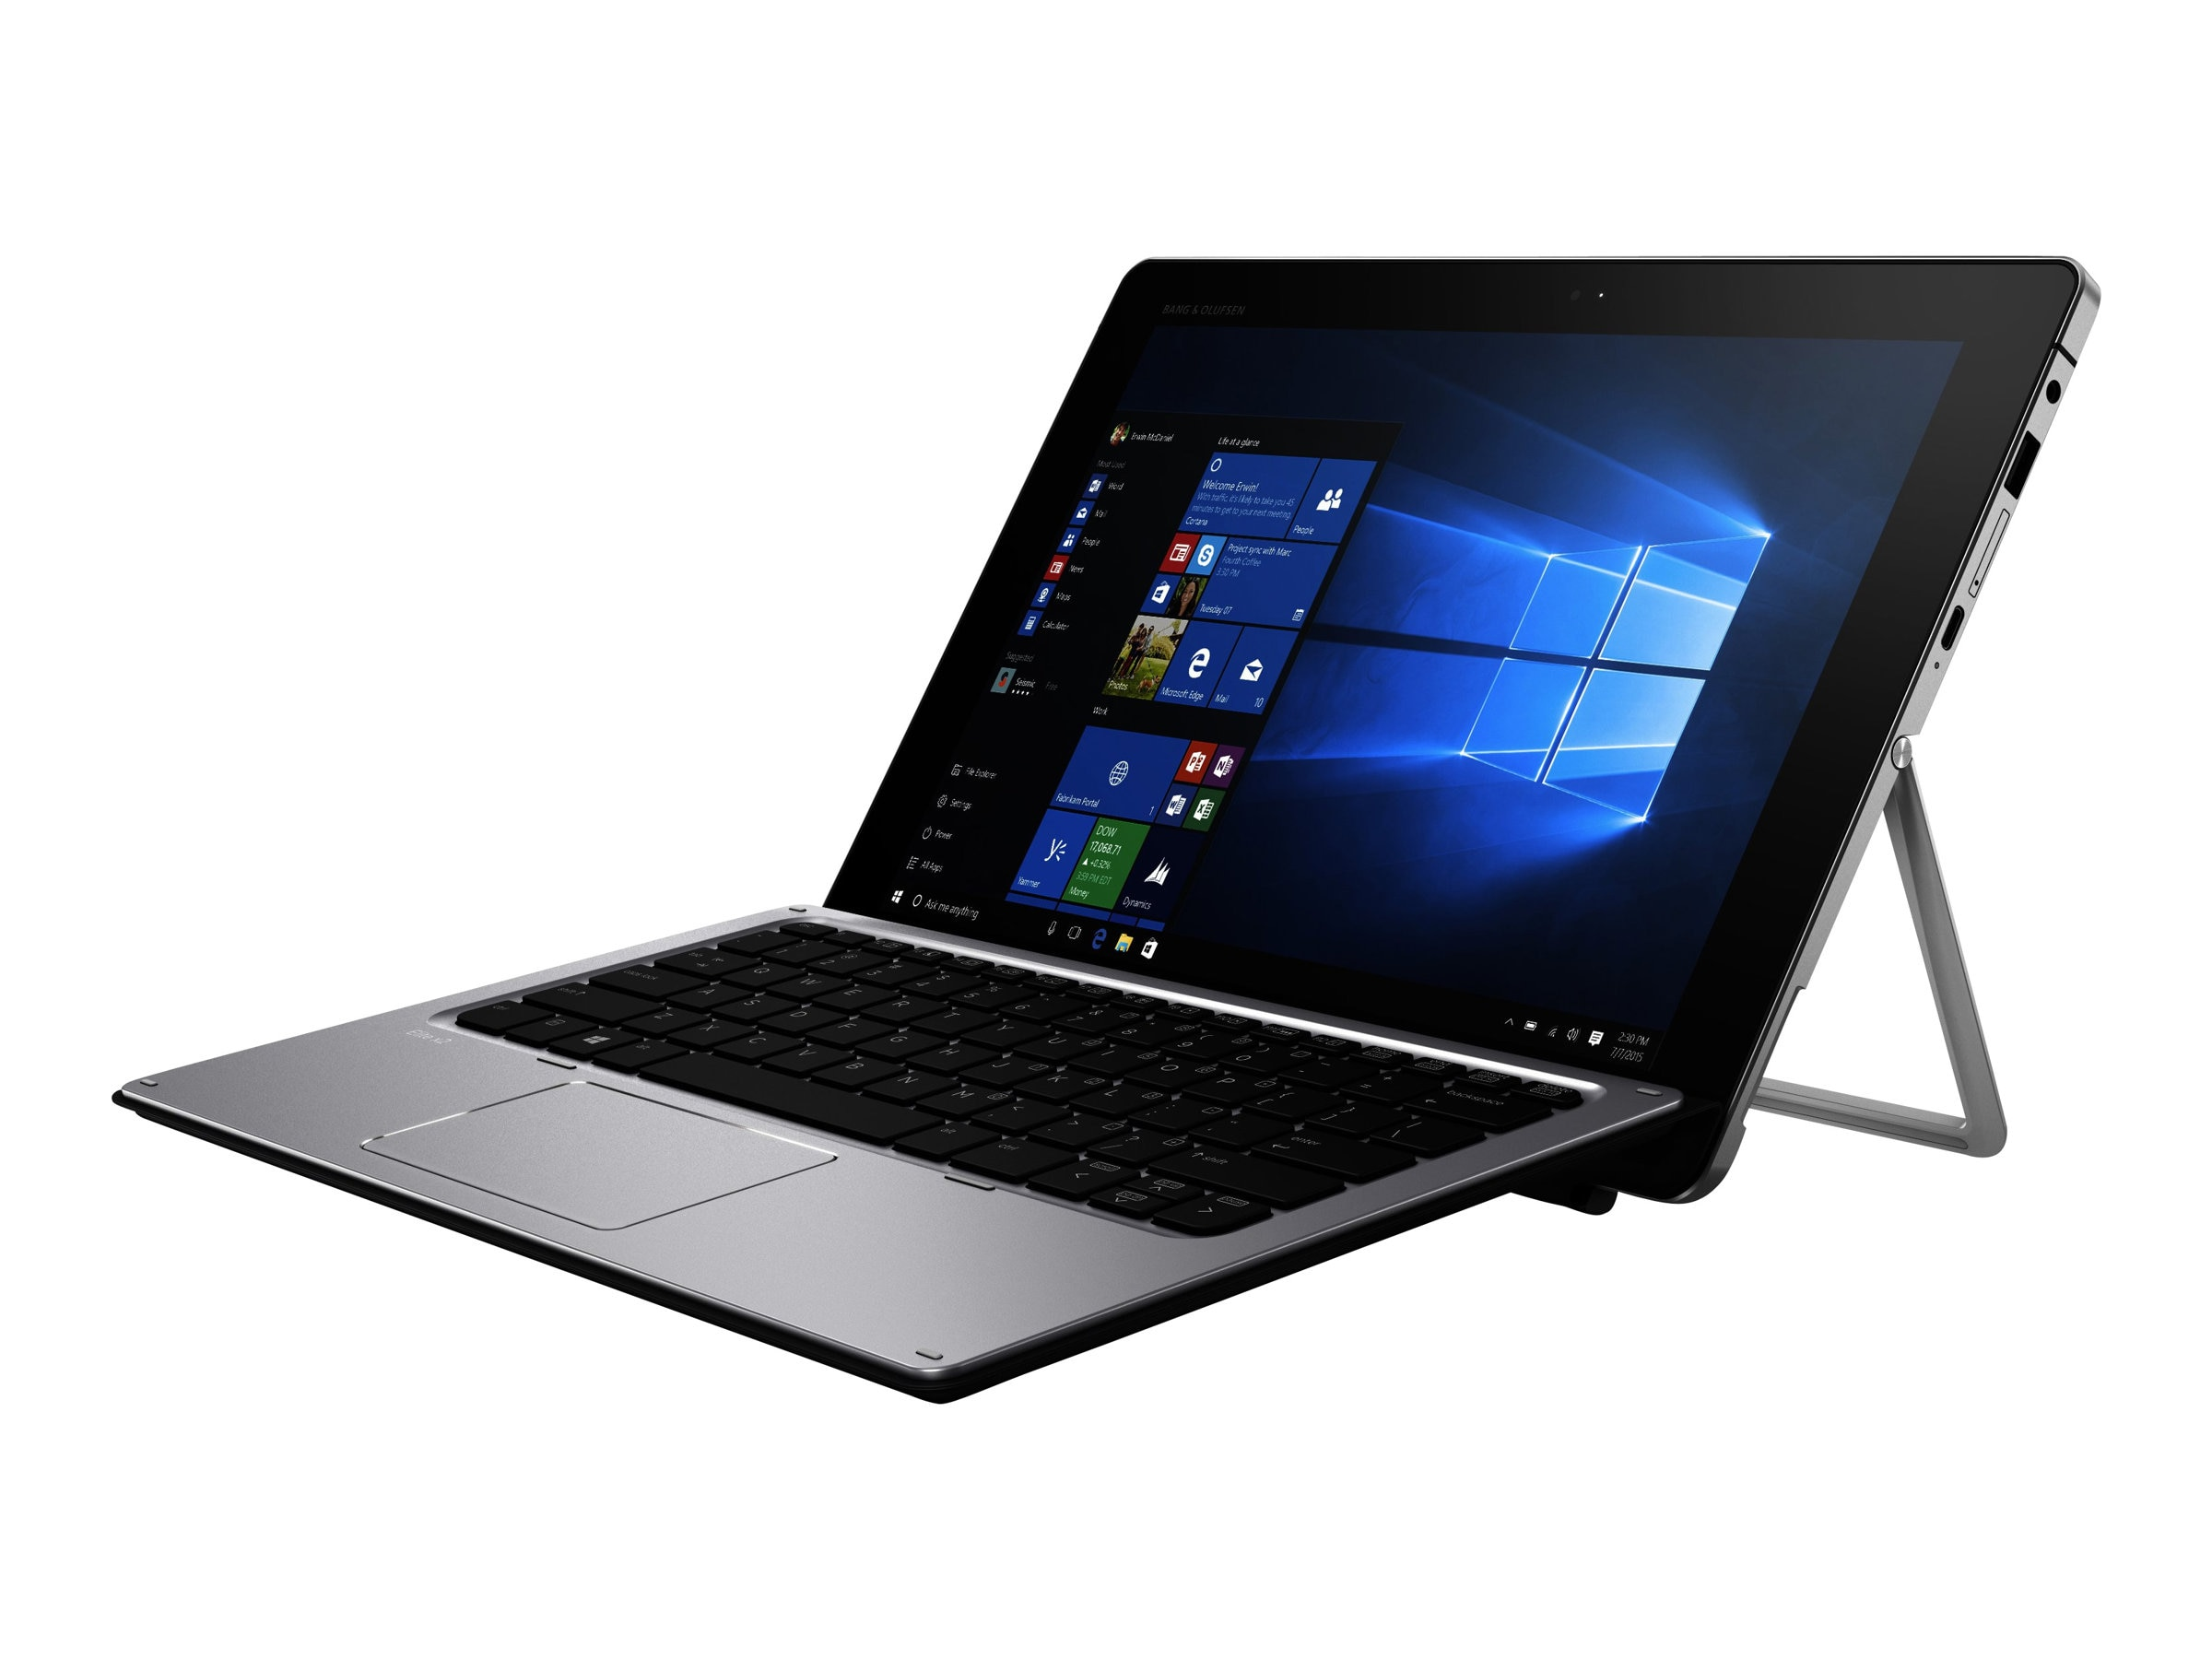 HP Elite x2 1012 1.1GHz processor Windows 10 Pro 64-bit Edition